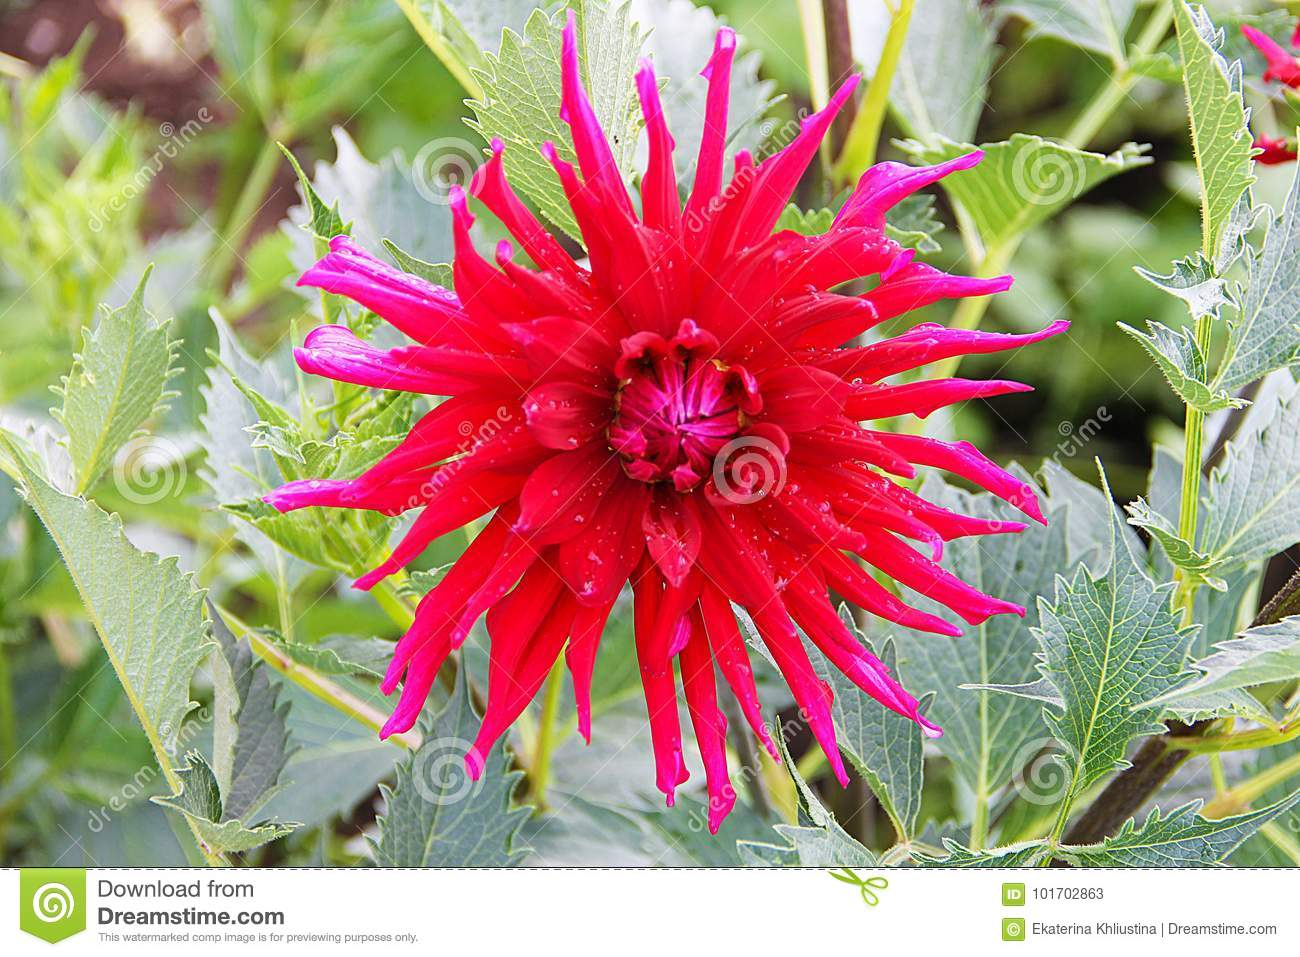 A Large Dahlia Flower Is Bright Red With Raindrops On The Petals